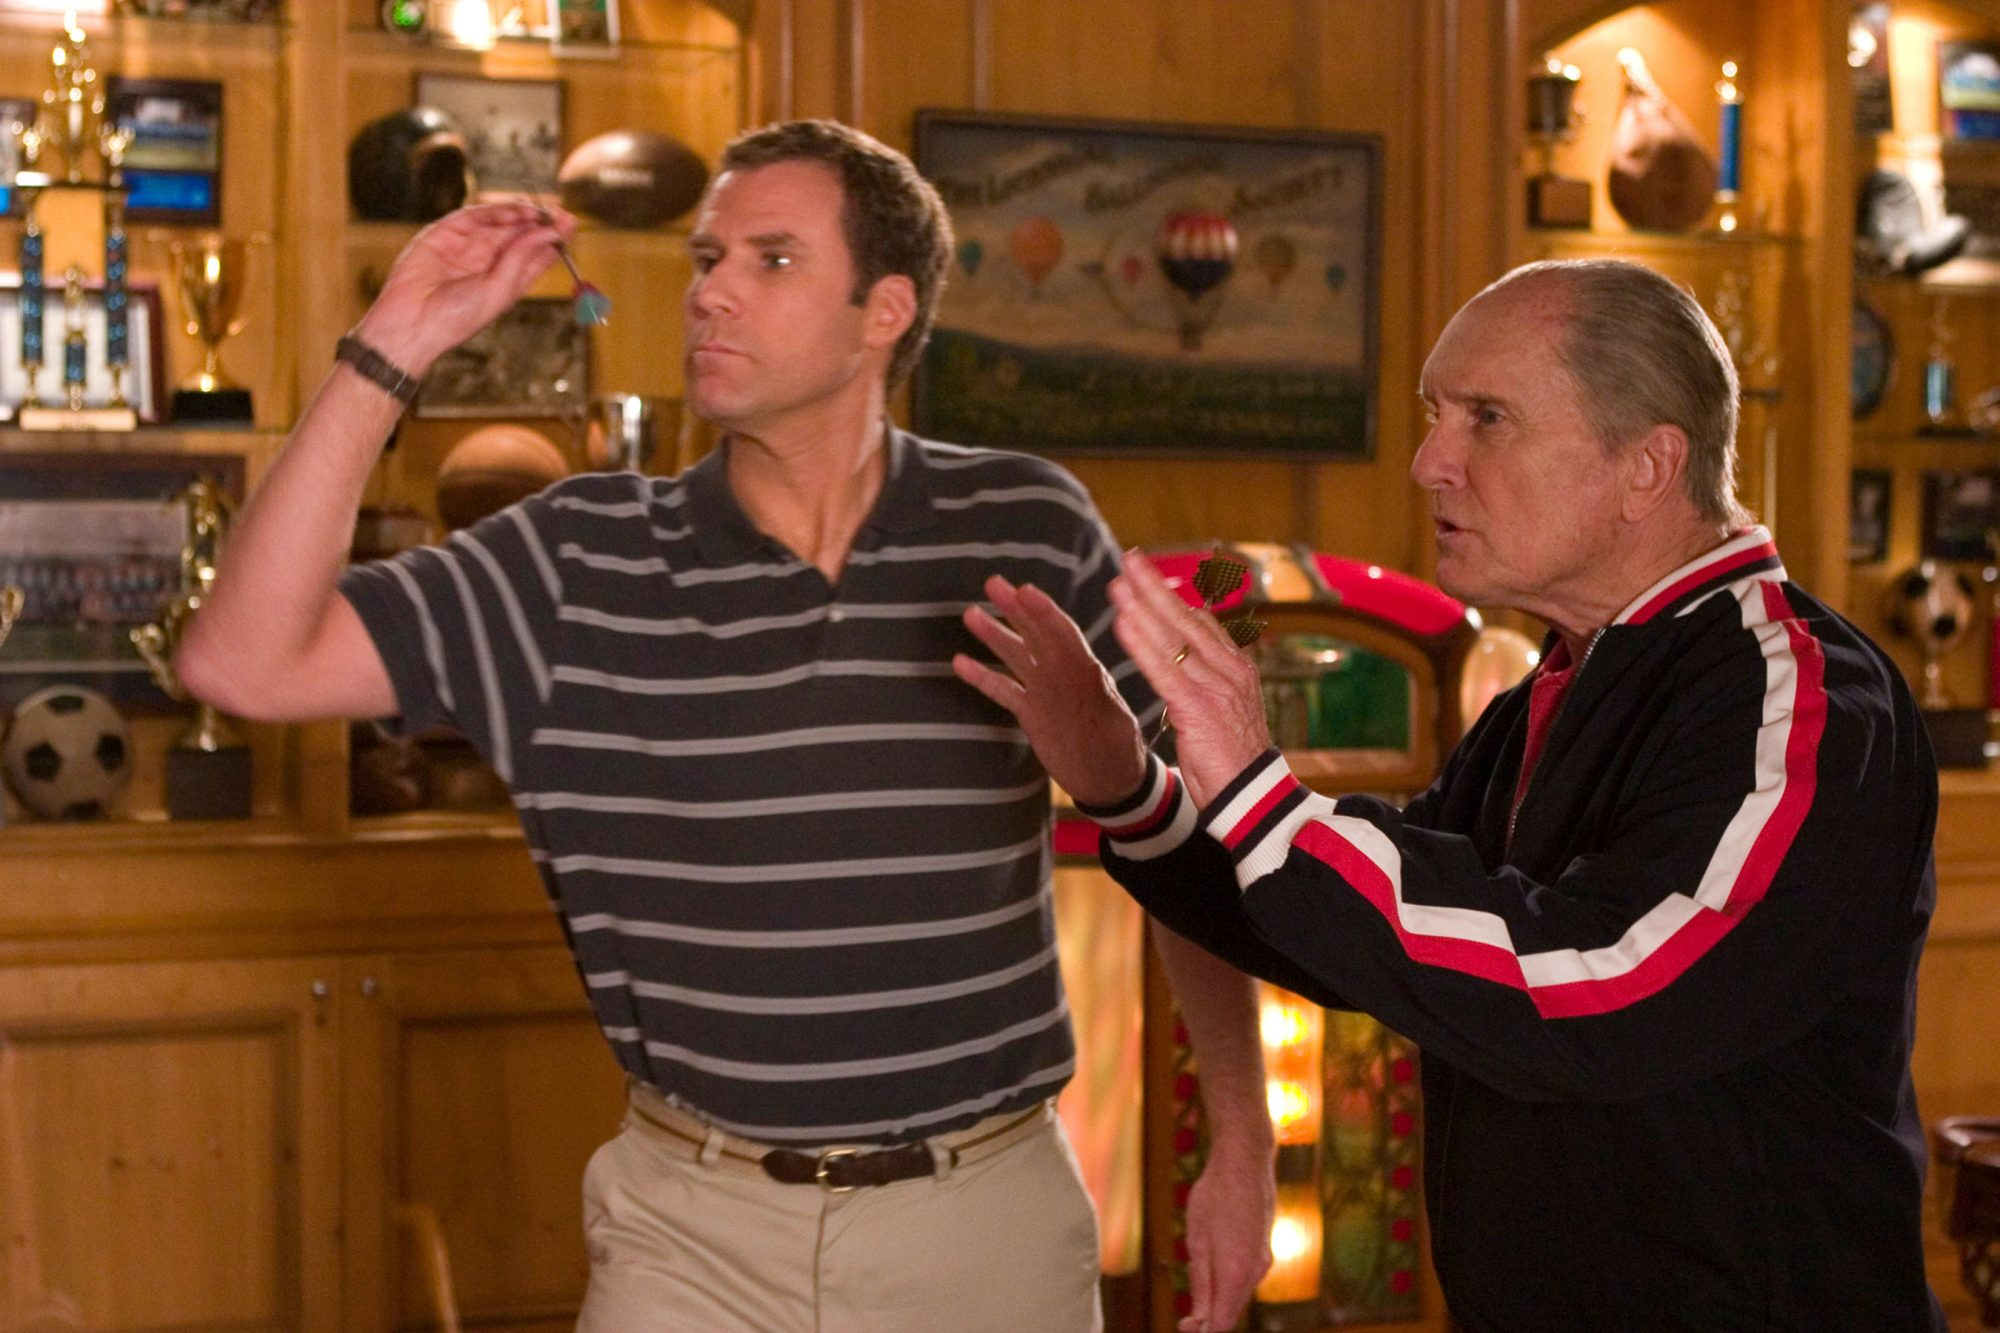 14. Will Ferrell and Robert Duvall in Kicking & Screaming (2005)